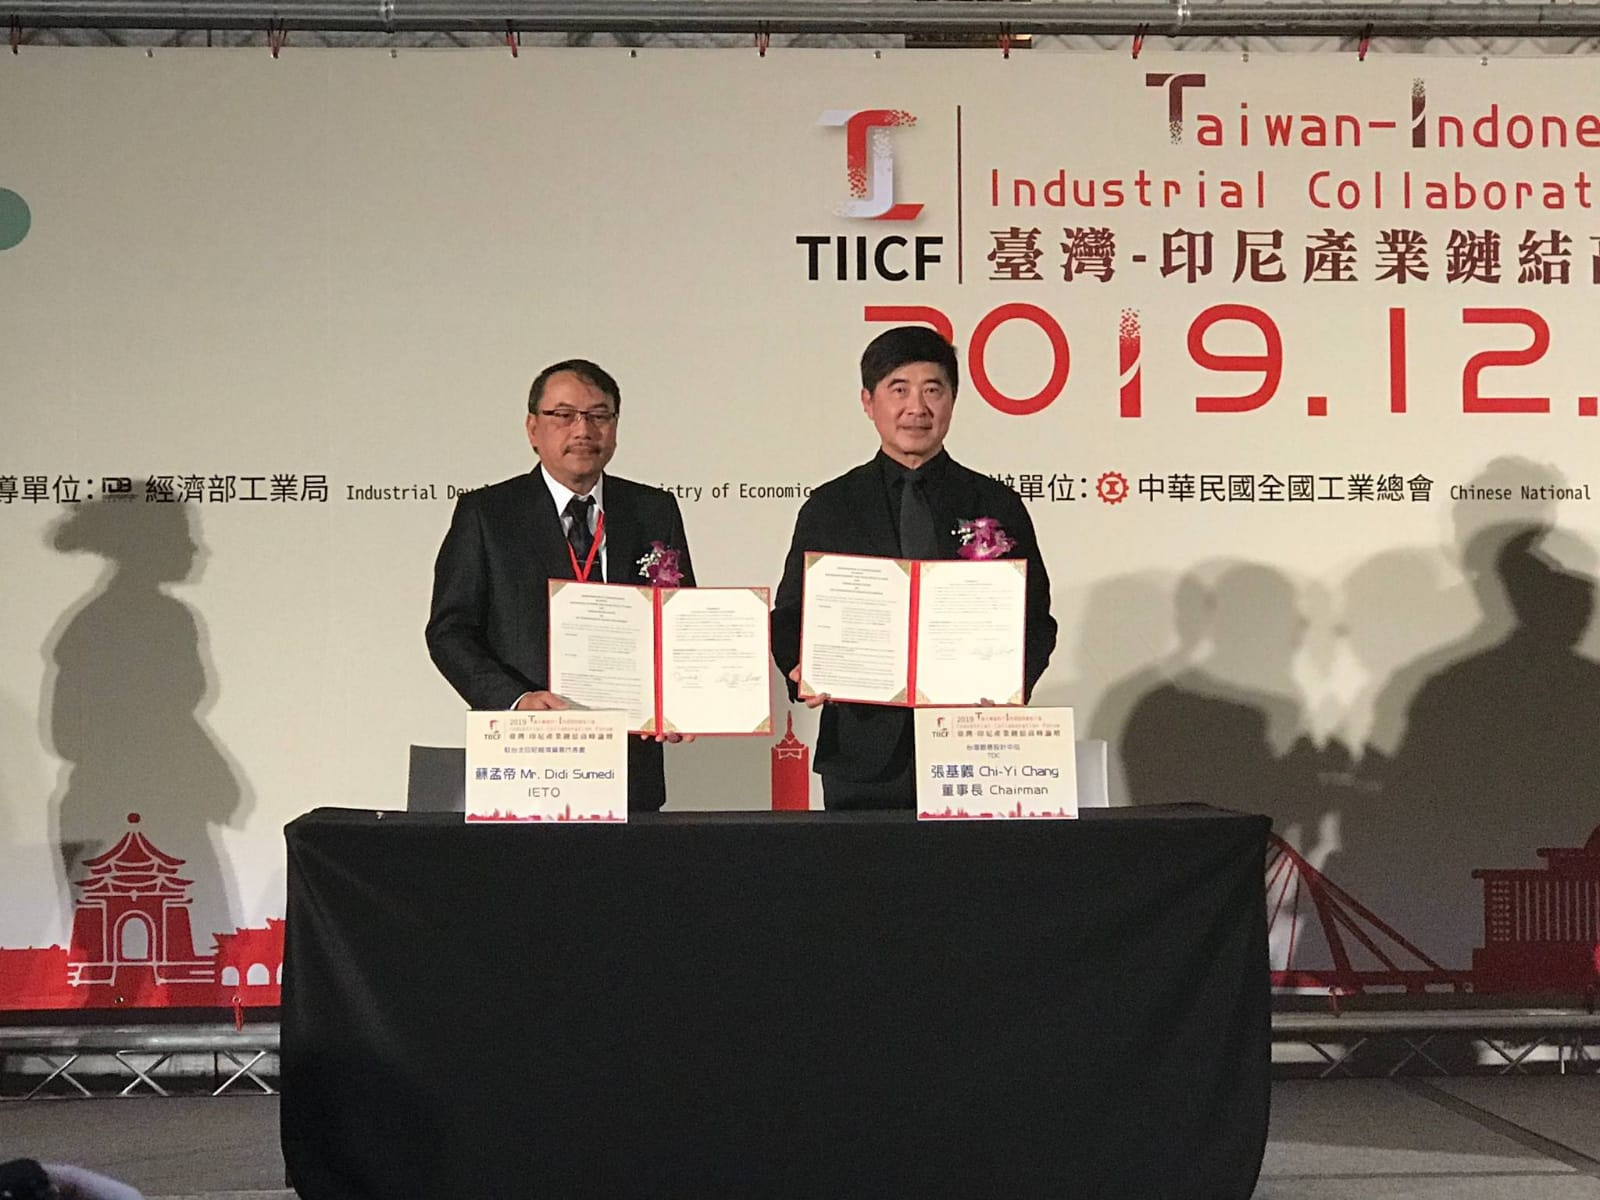 2019 TAIWAN - INDONESIA Industrial Collaboration Forum